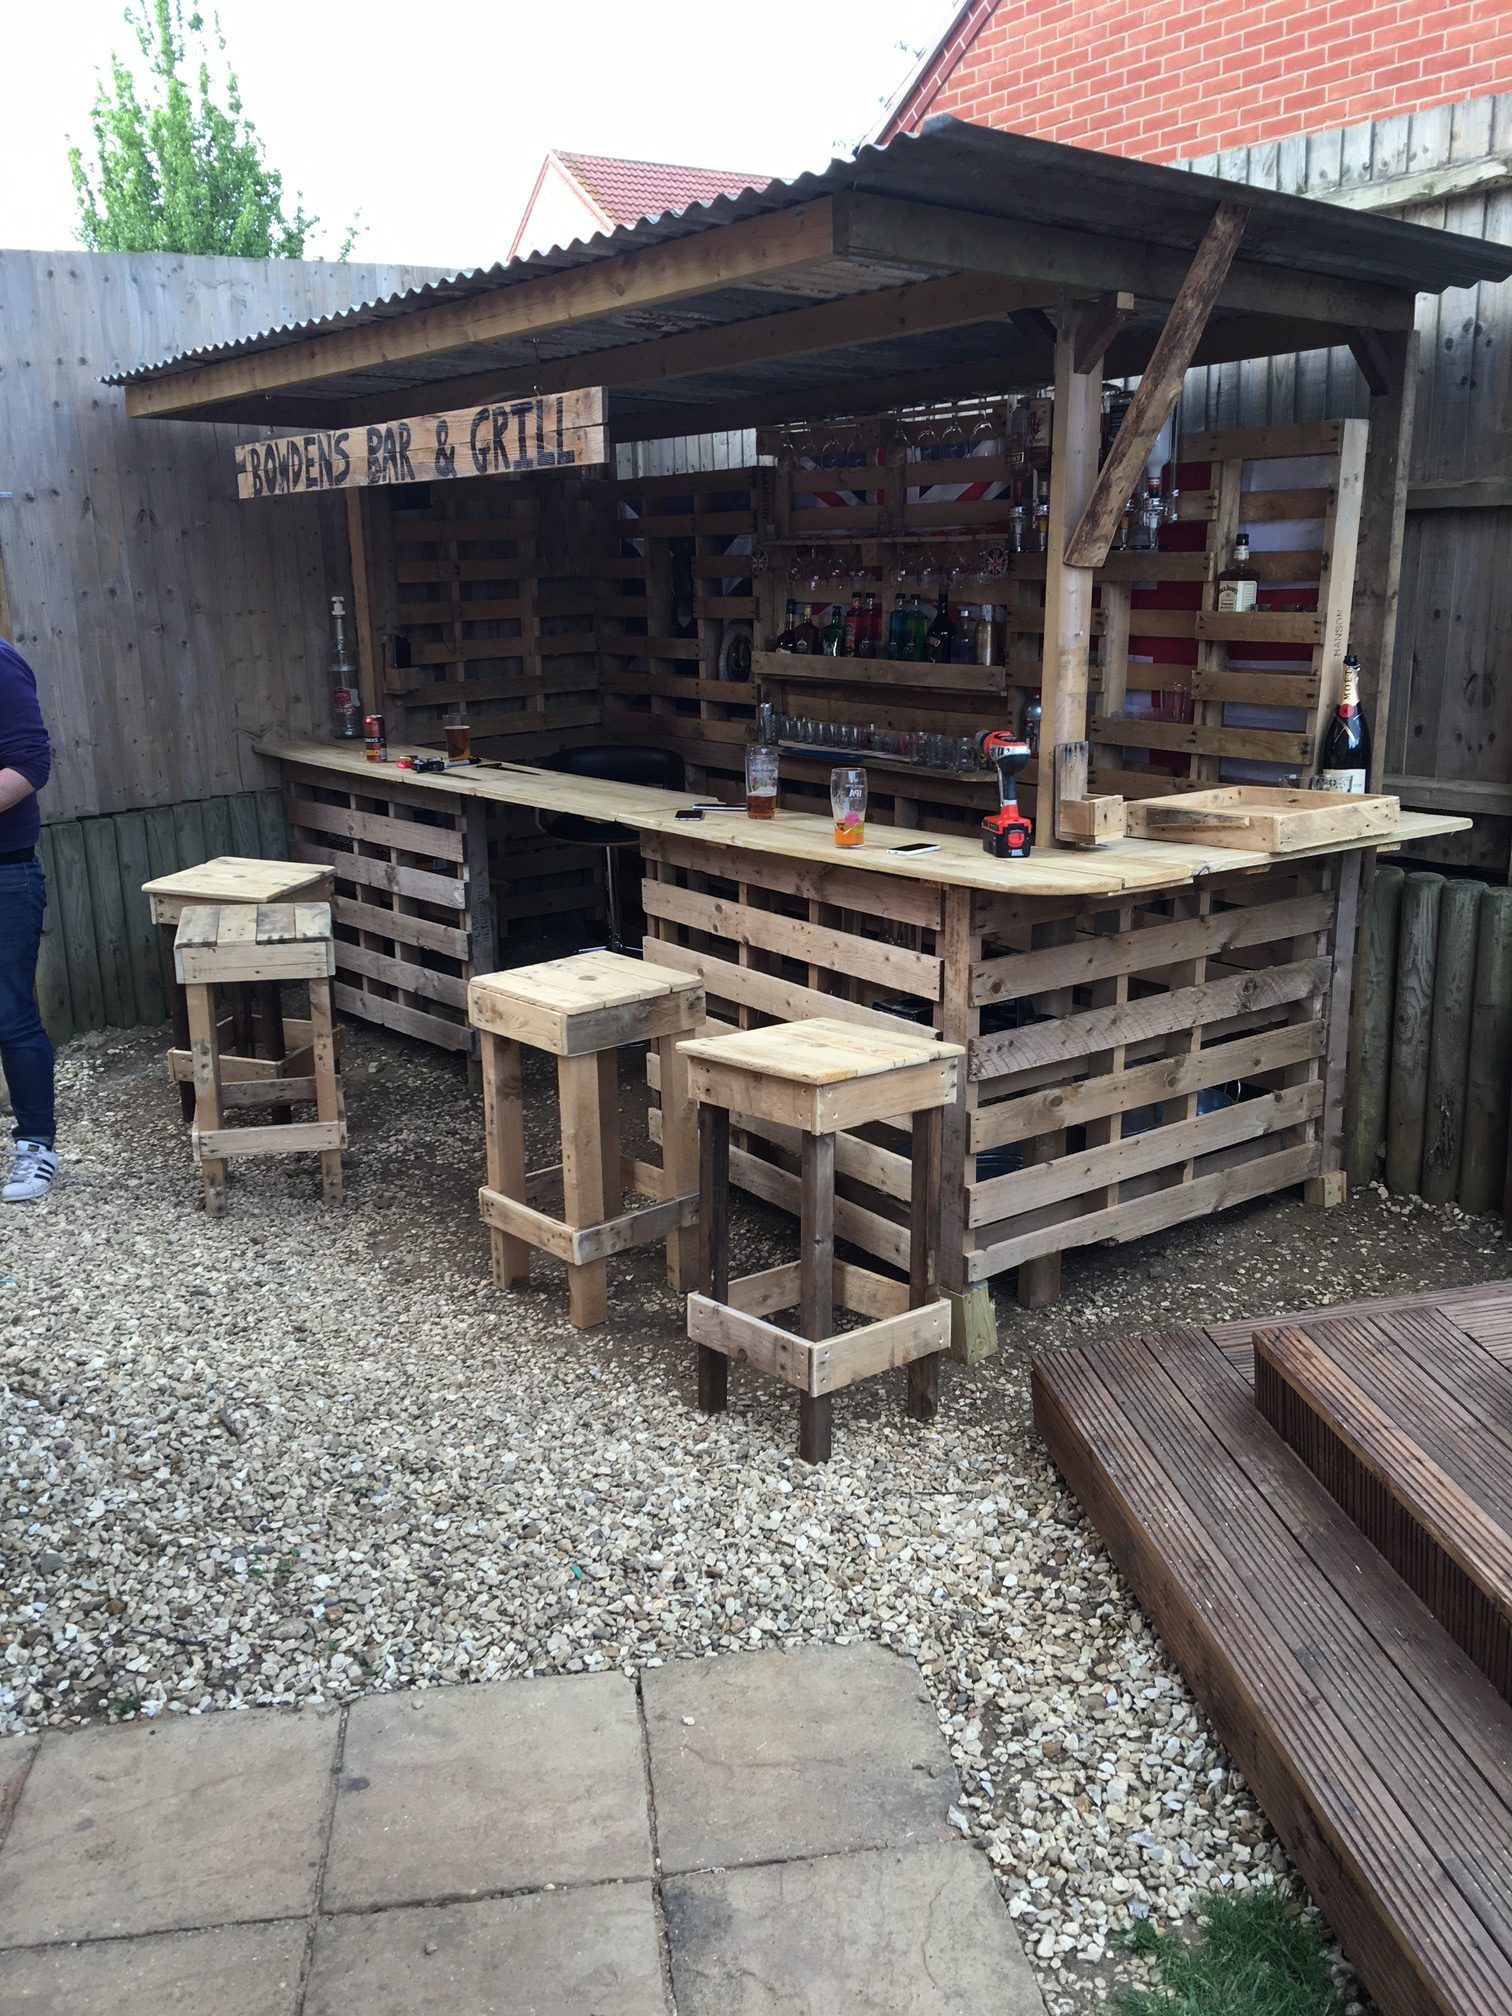 Exceptional How To Turn A Pile Of Old Pallets Into A Cool Outdoor Bar Fit For Any Garden .